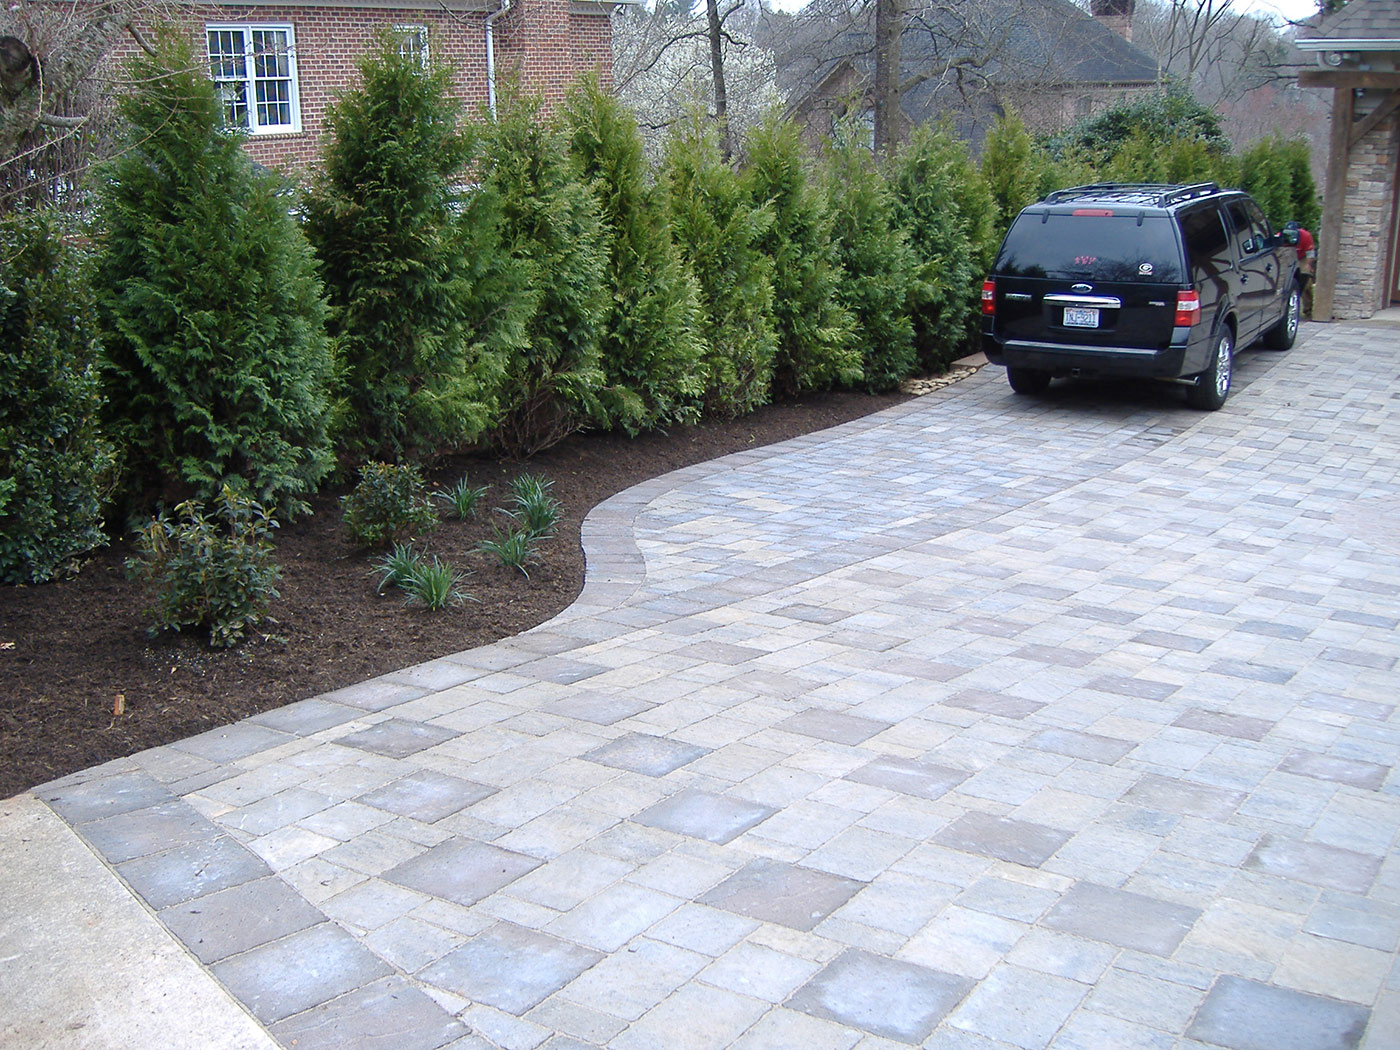 Wyatt driveway after pic 2